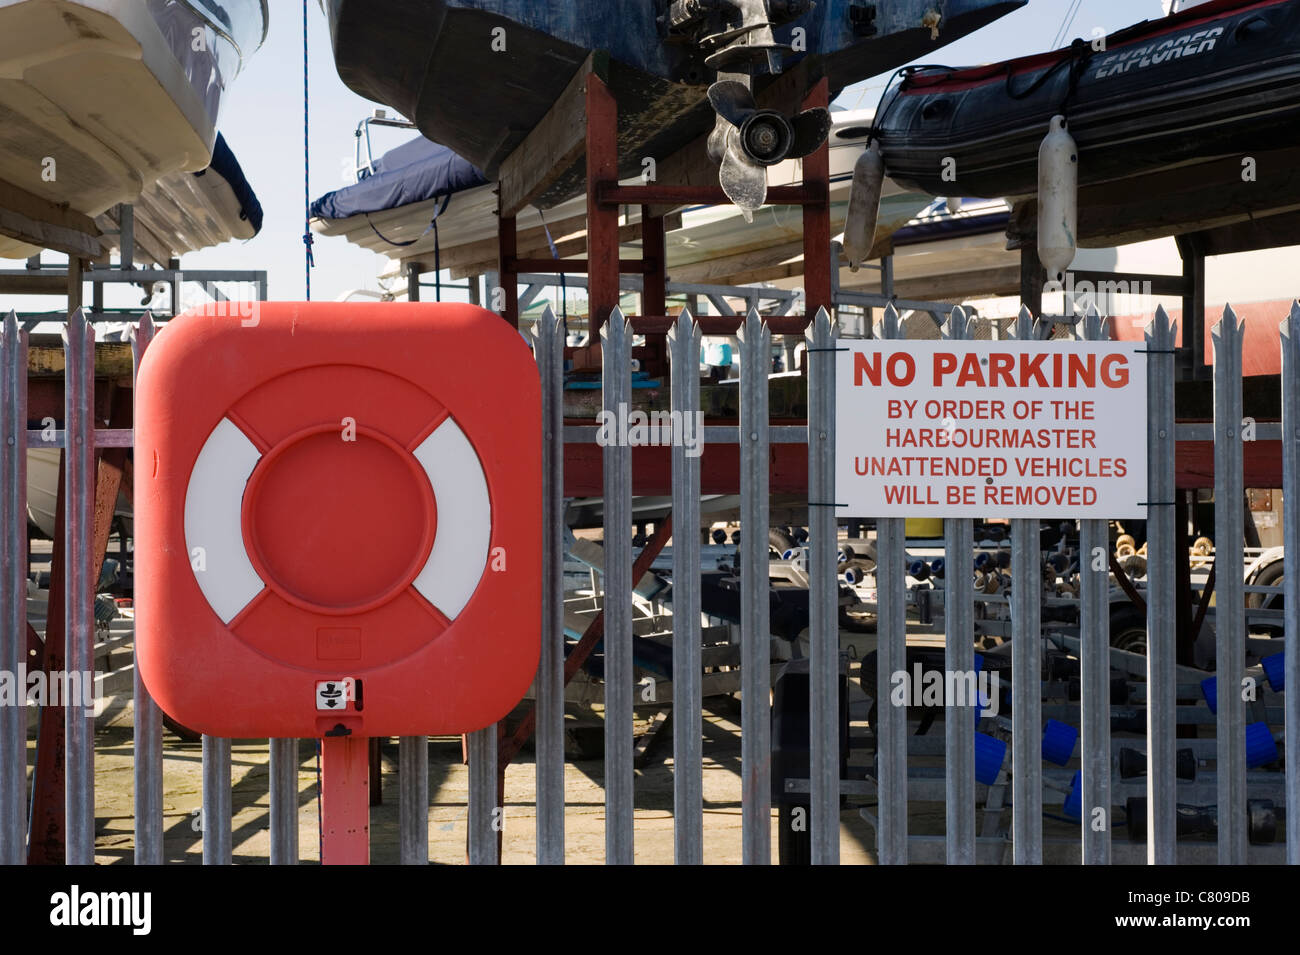 life ring and harbourmaster warning sign on the quayside - Stock Image